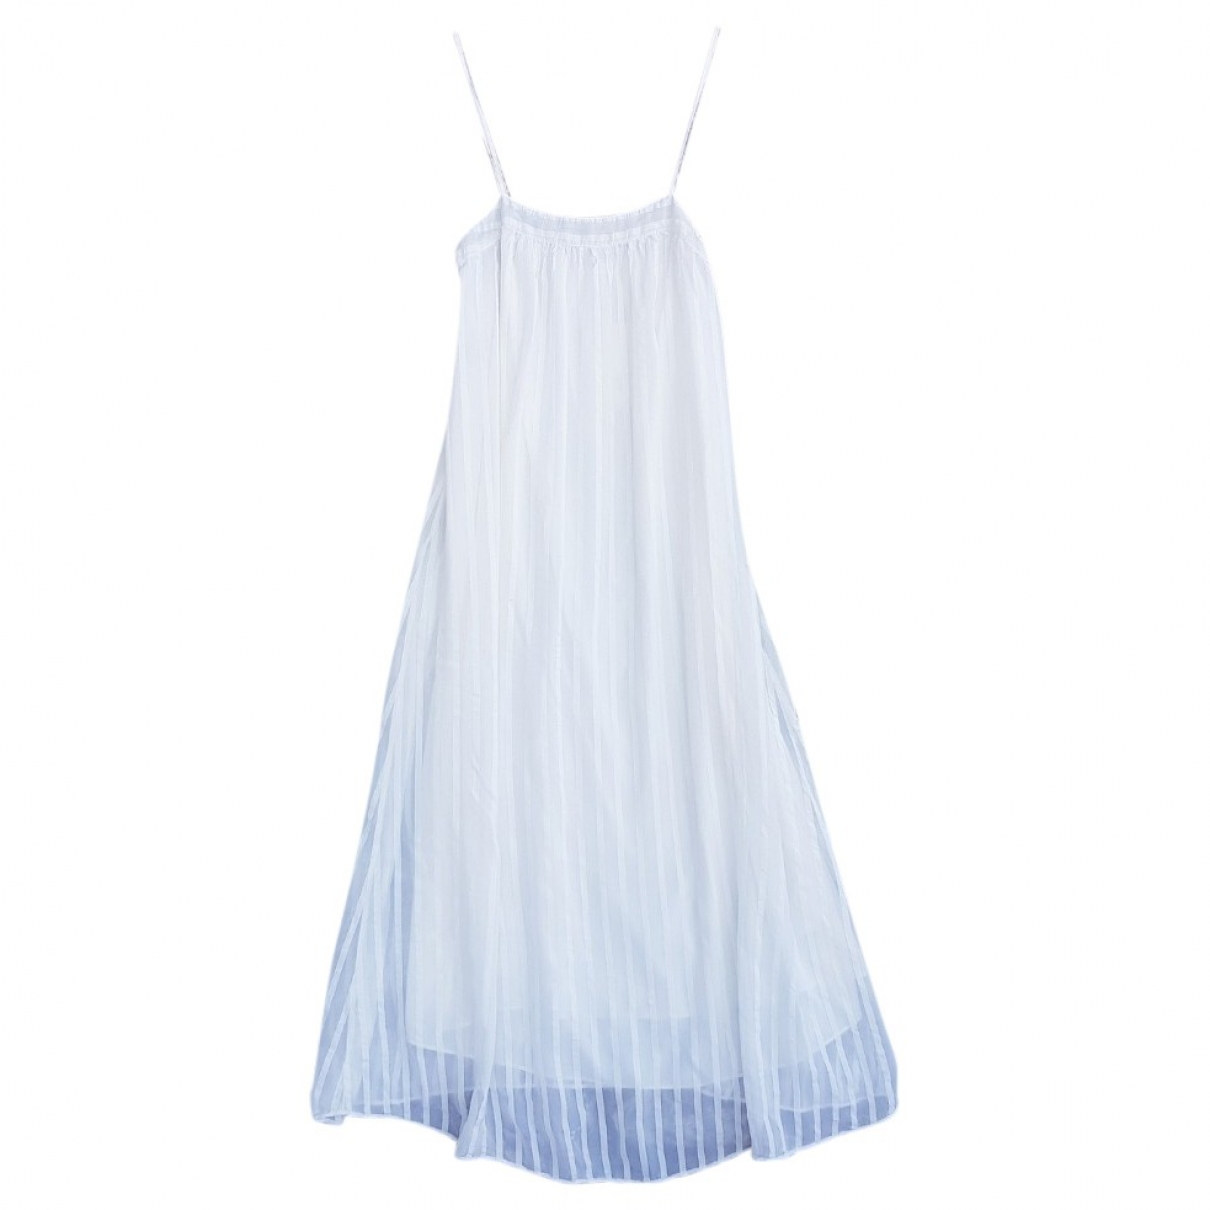 Zara \N White dress for Women M International